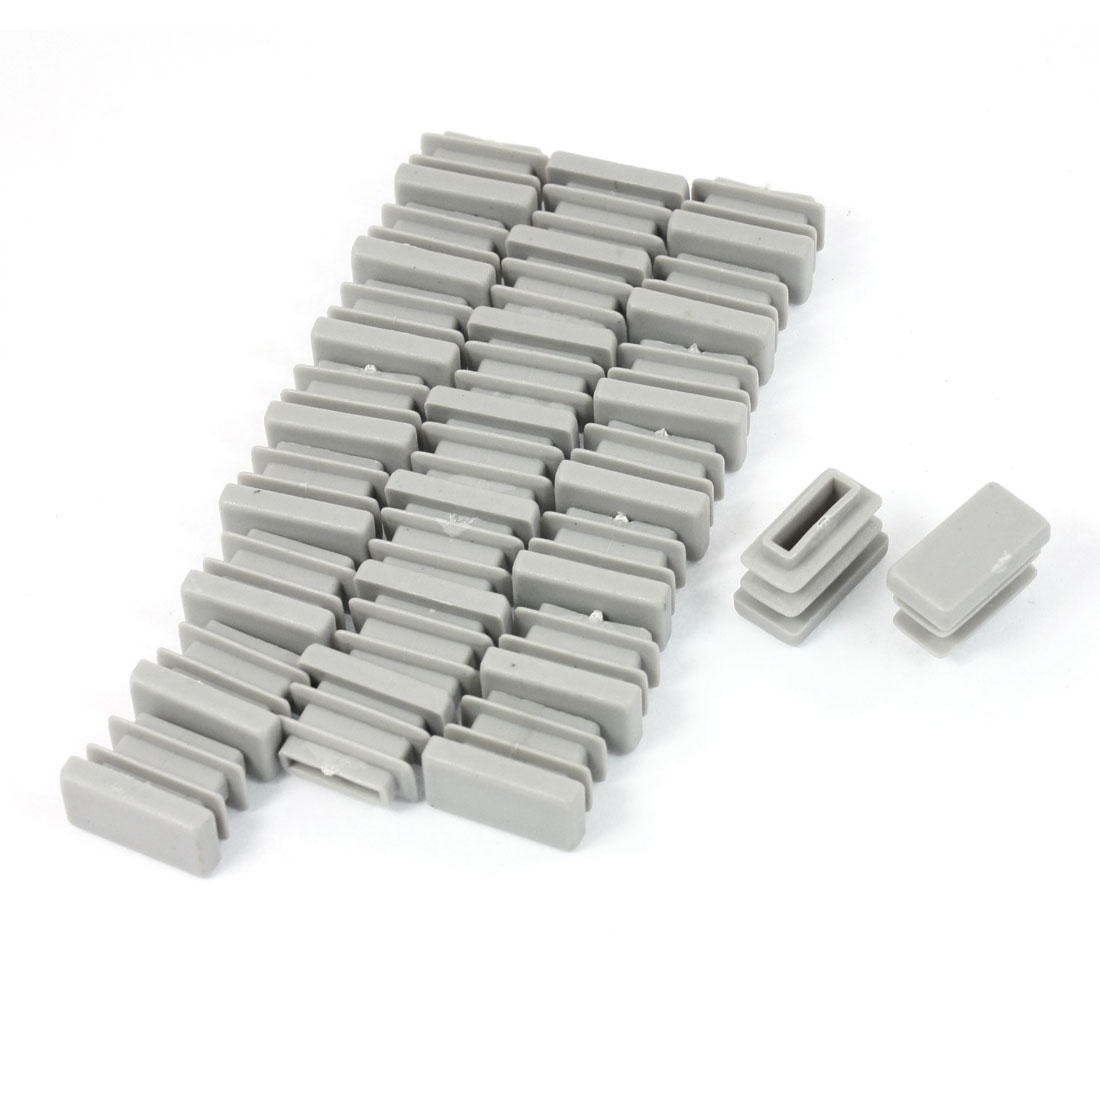 24 Pcs 10mm x 20mm Plastic Blanking End Caps Cover Rectangle Tubing Tube Insert Gray